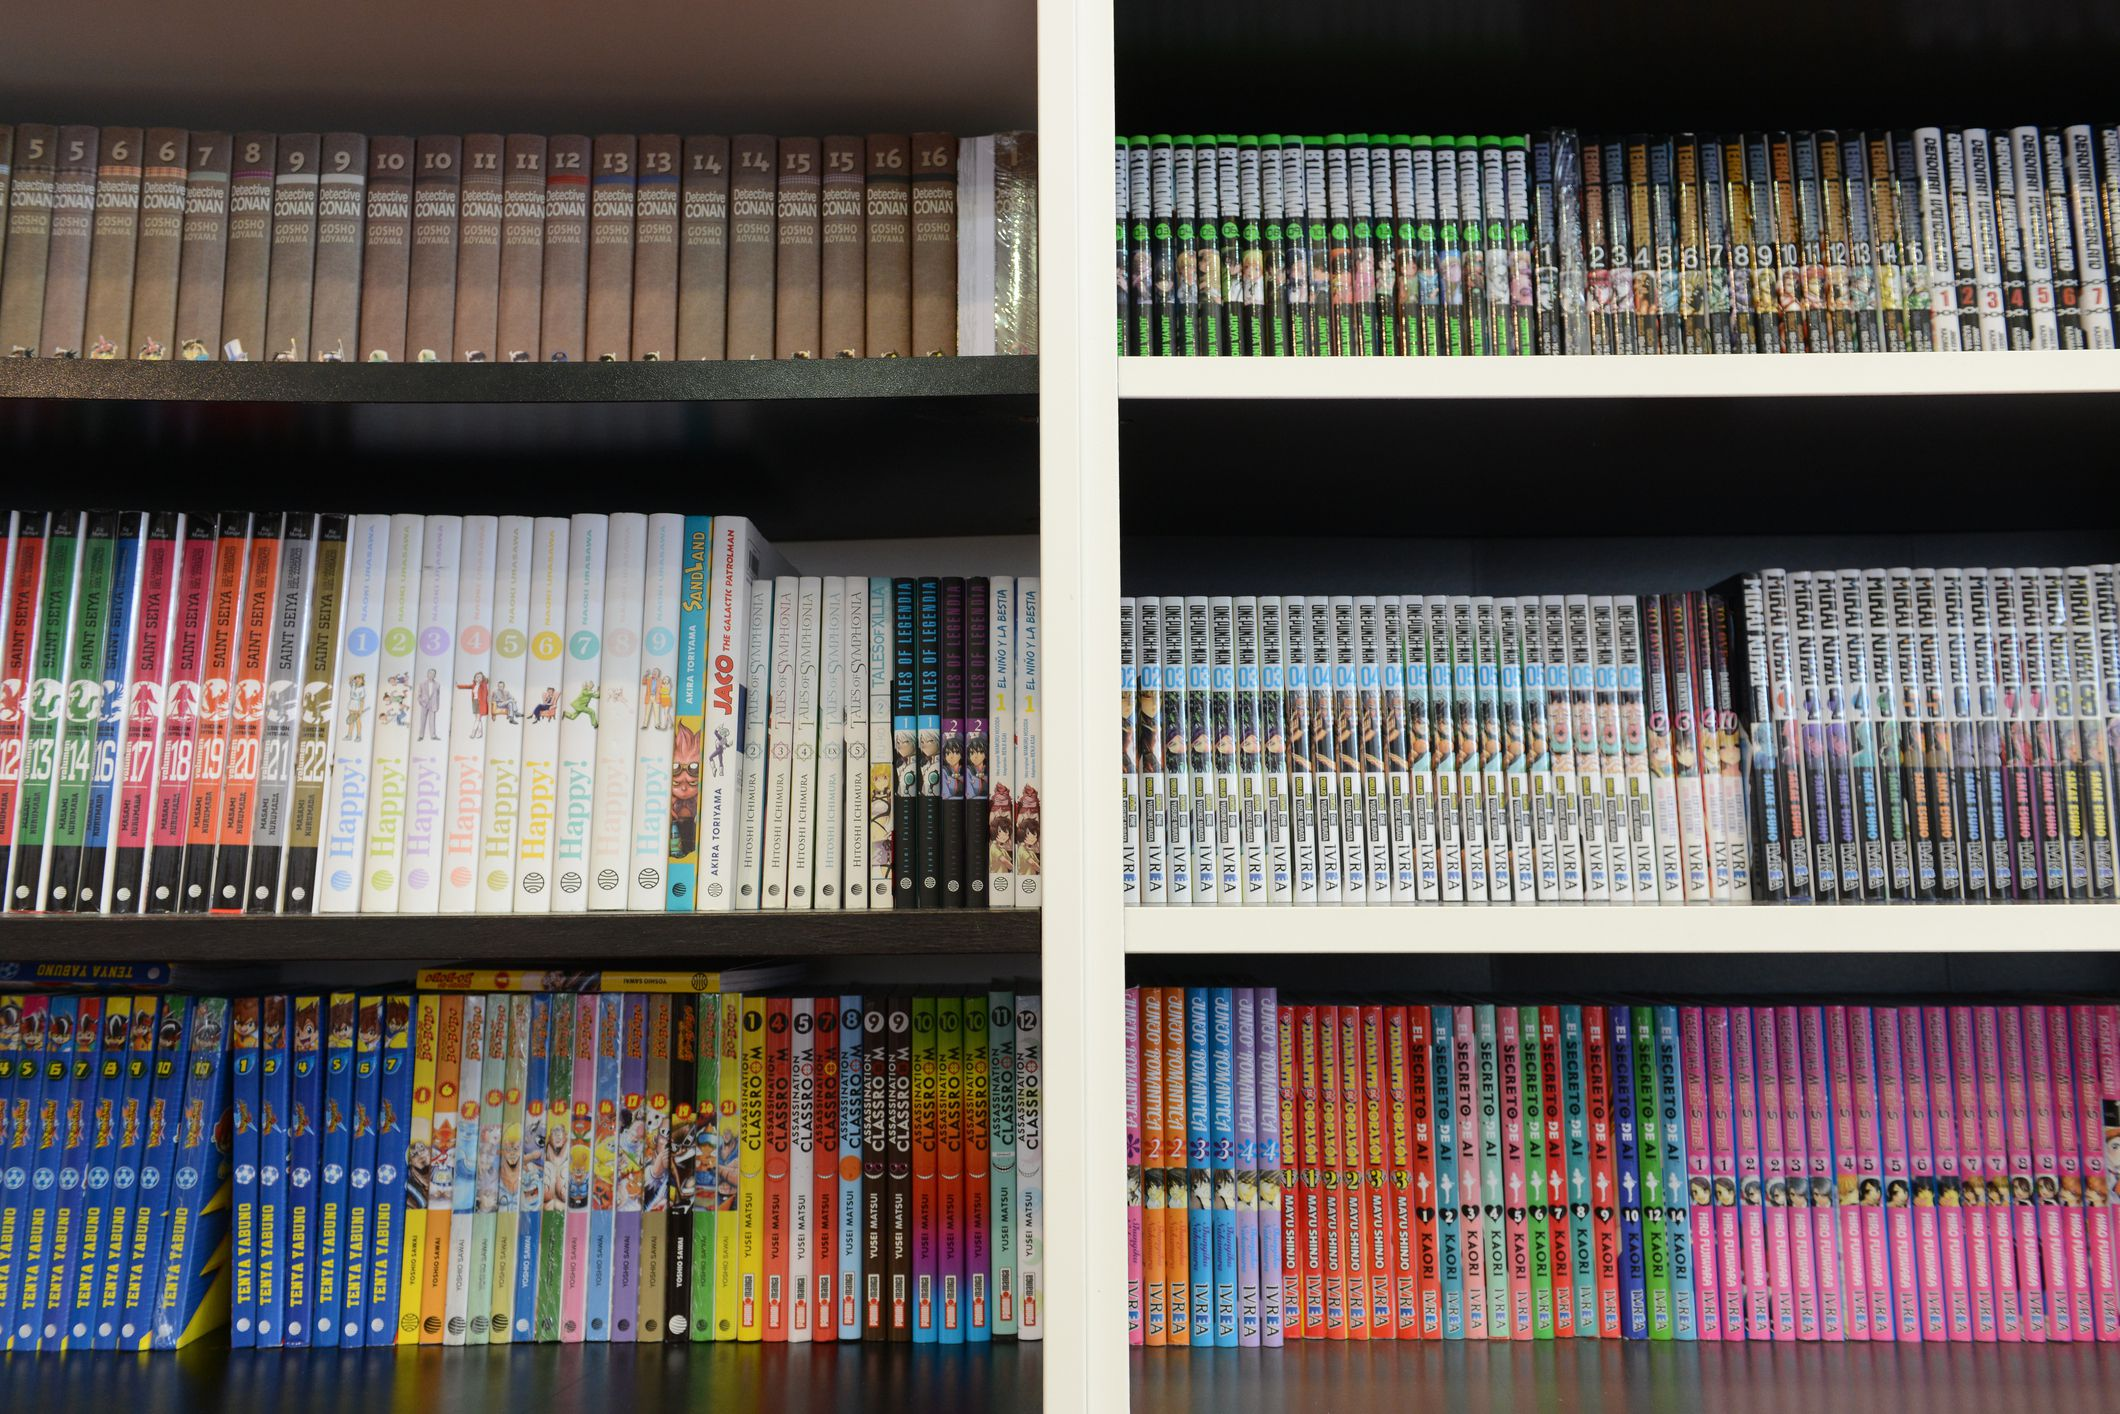 How To Read Manga Without Going Broke